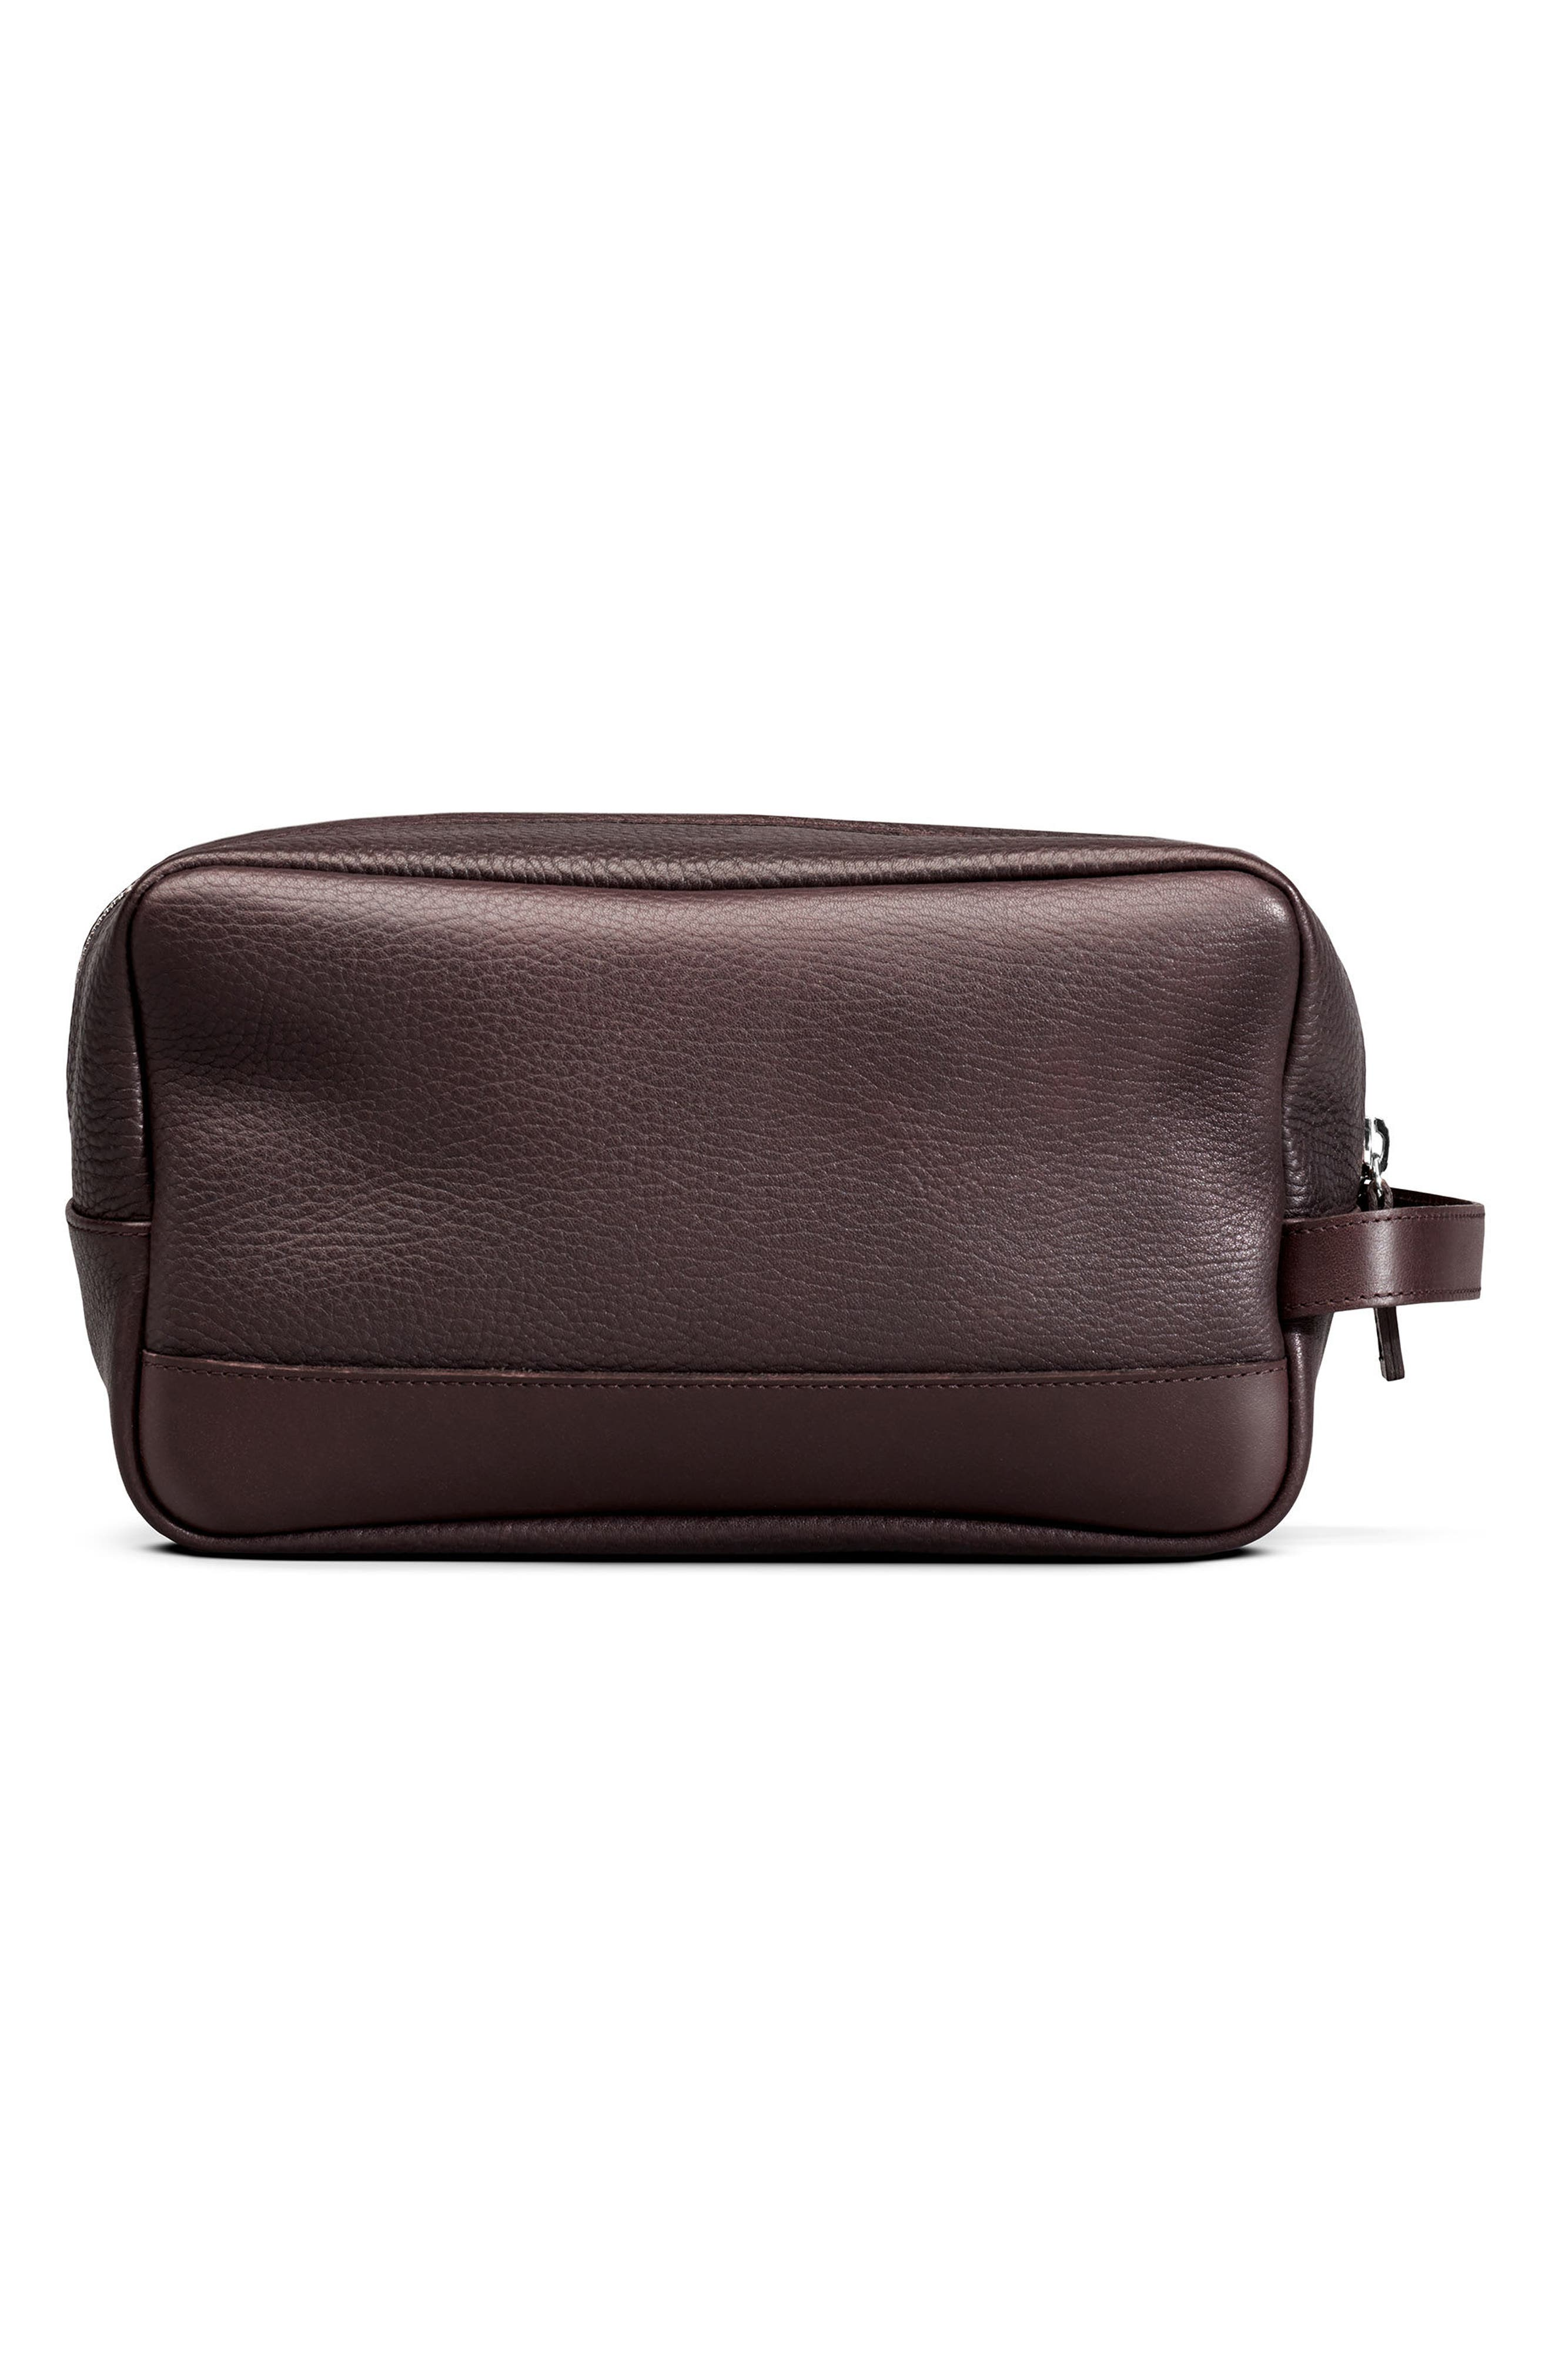 Leather Travel Kit,                             Alternate thumbnail 2, color,                             Deep Brown